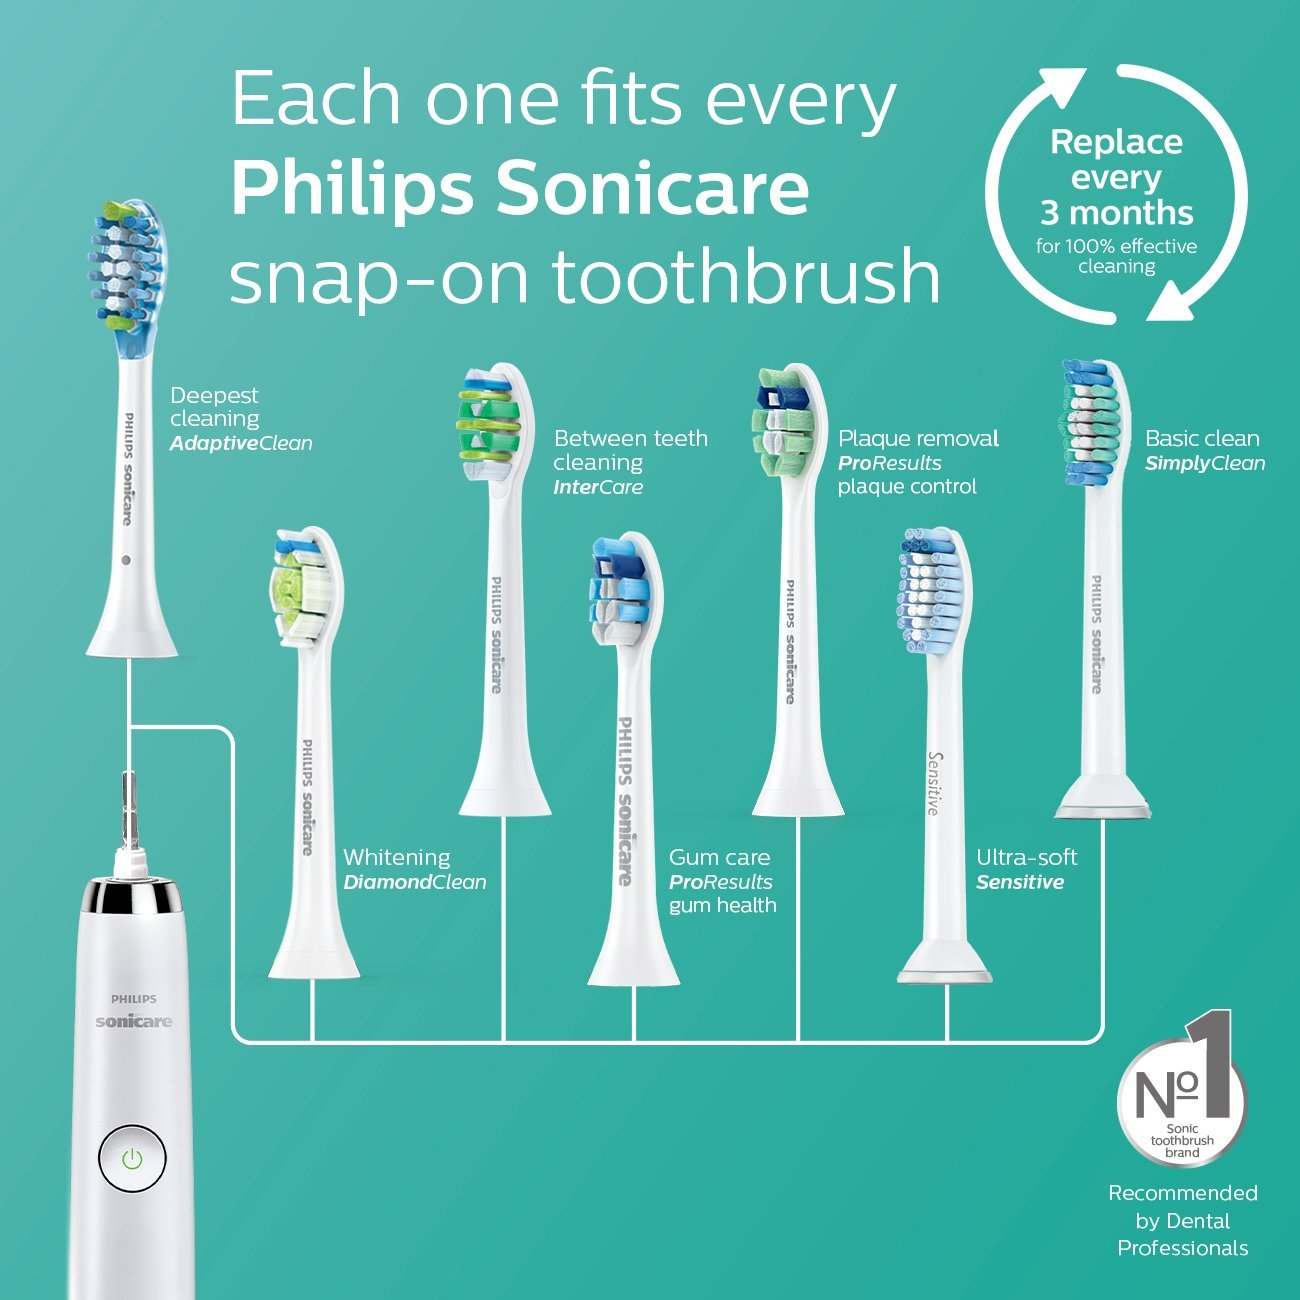 Phillips Sonicare brush heads